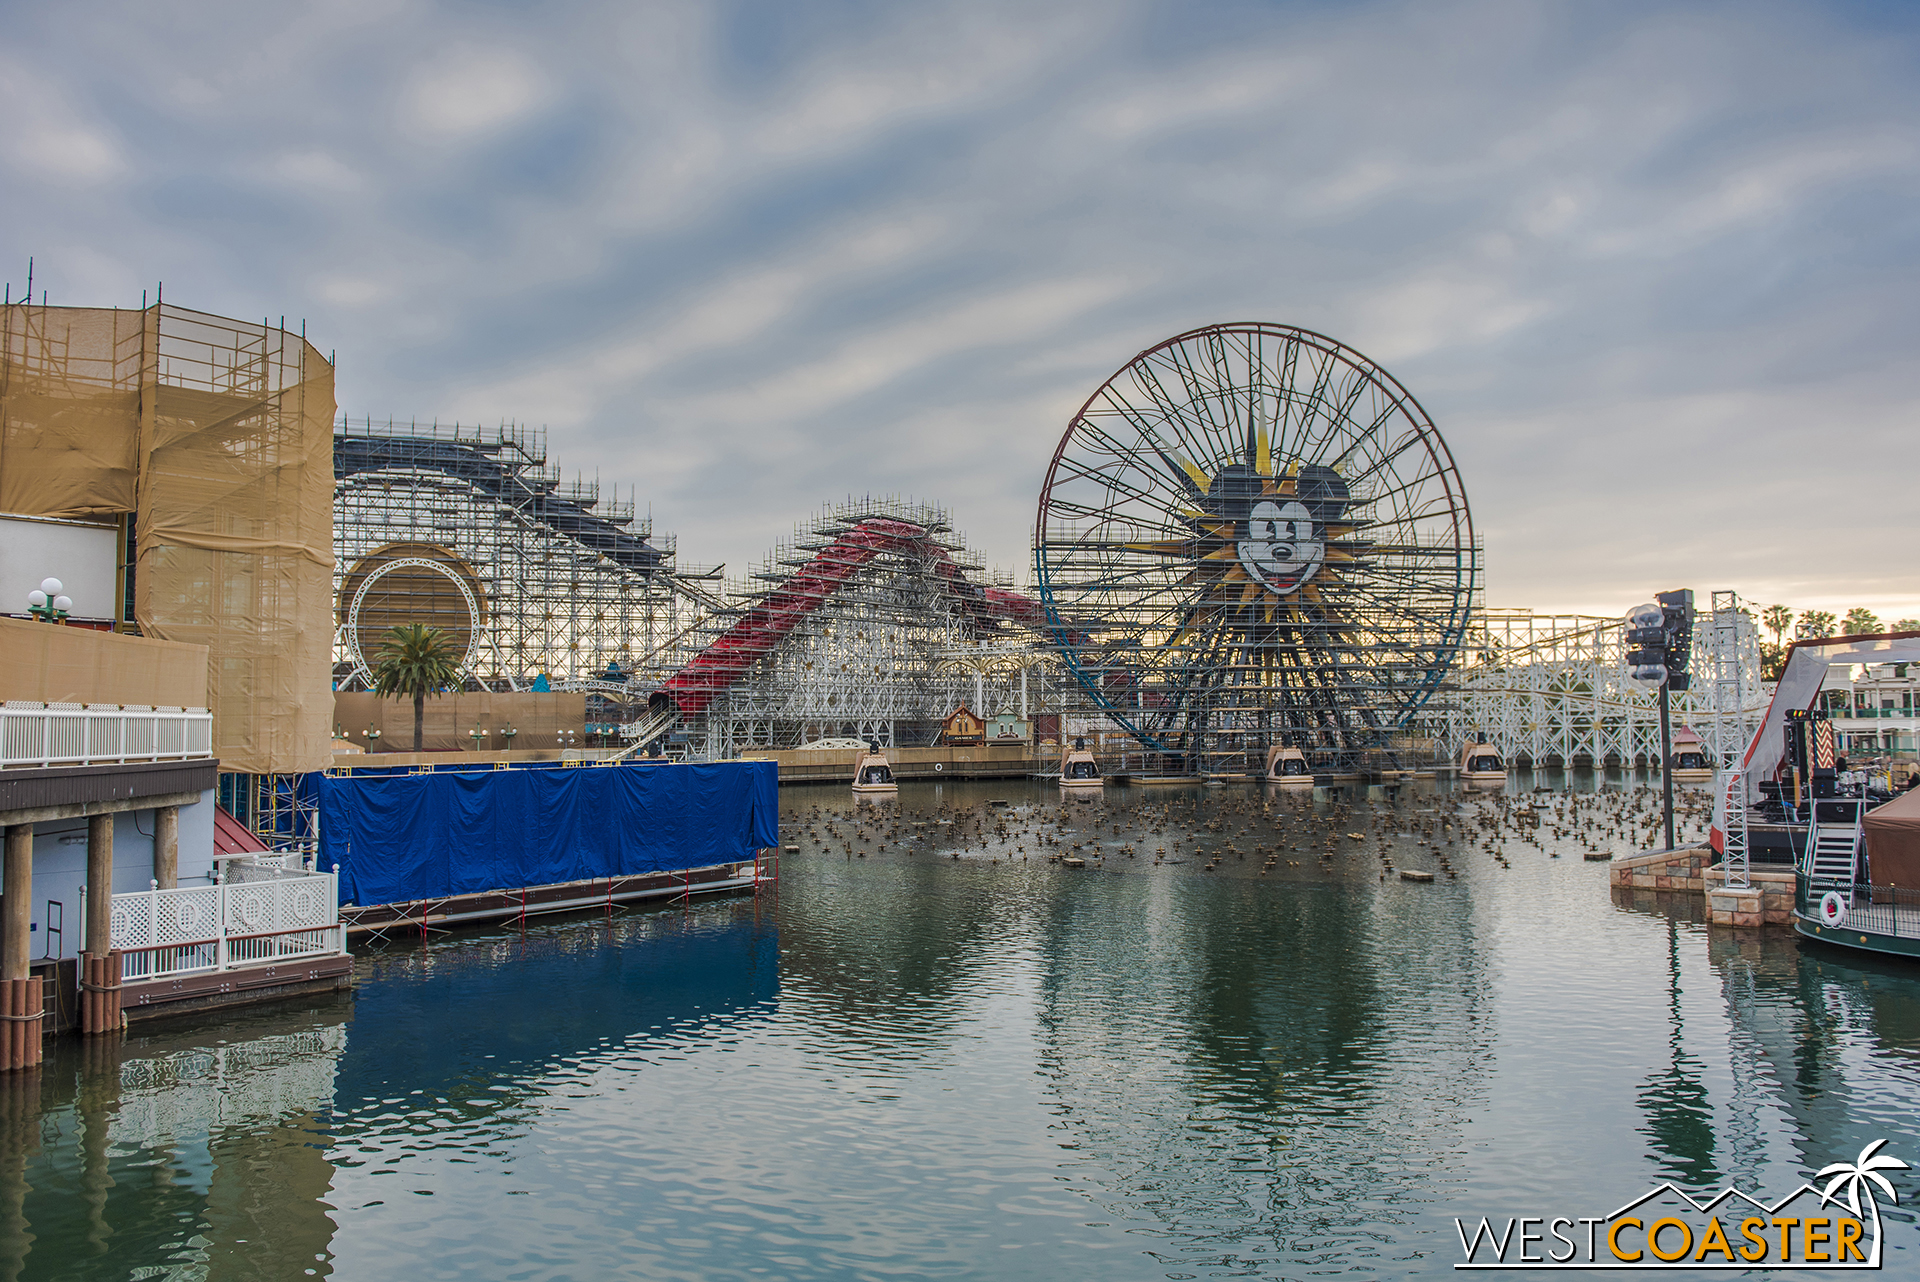 Another gloomy late afternoon at future Pixar Pier.